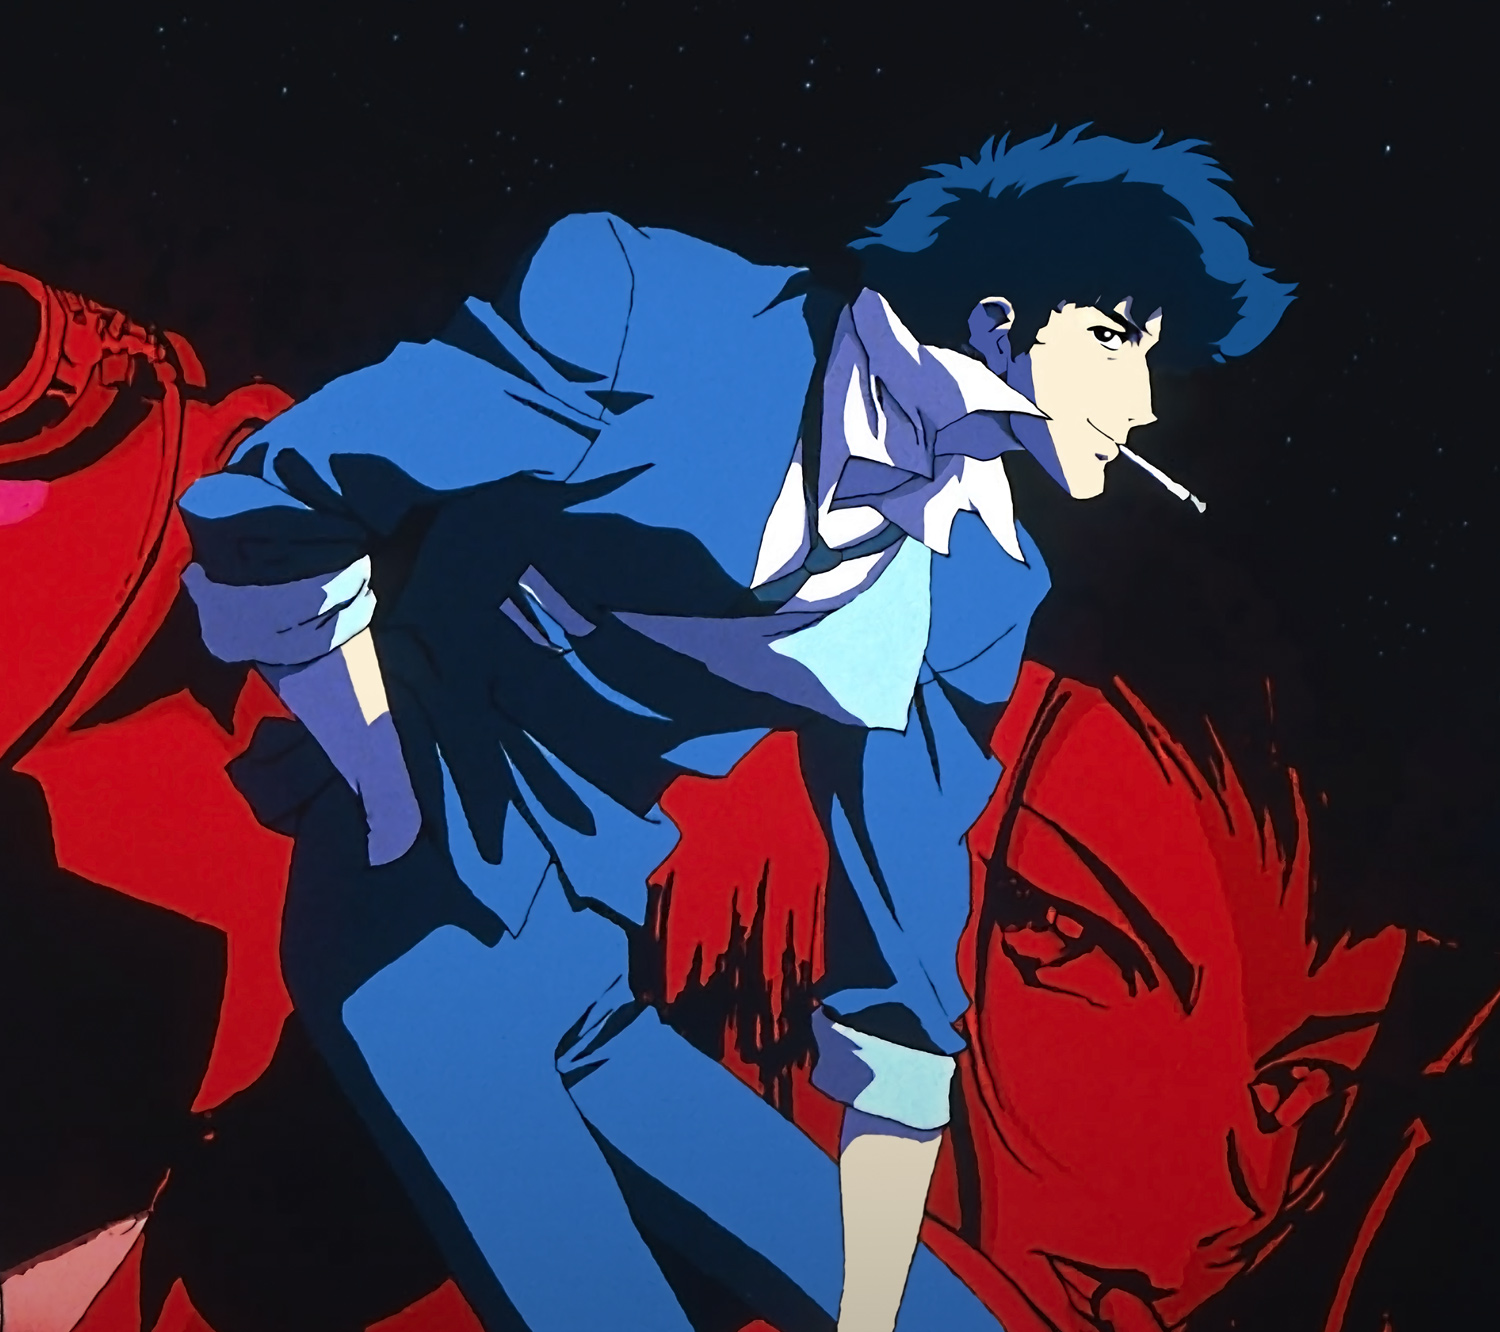 Watch Cowboy Bebop Episodes Sub & Dub | Action/Adventure, Sci Fi